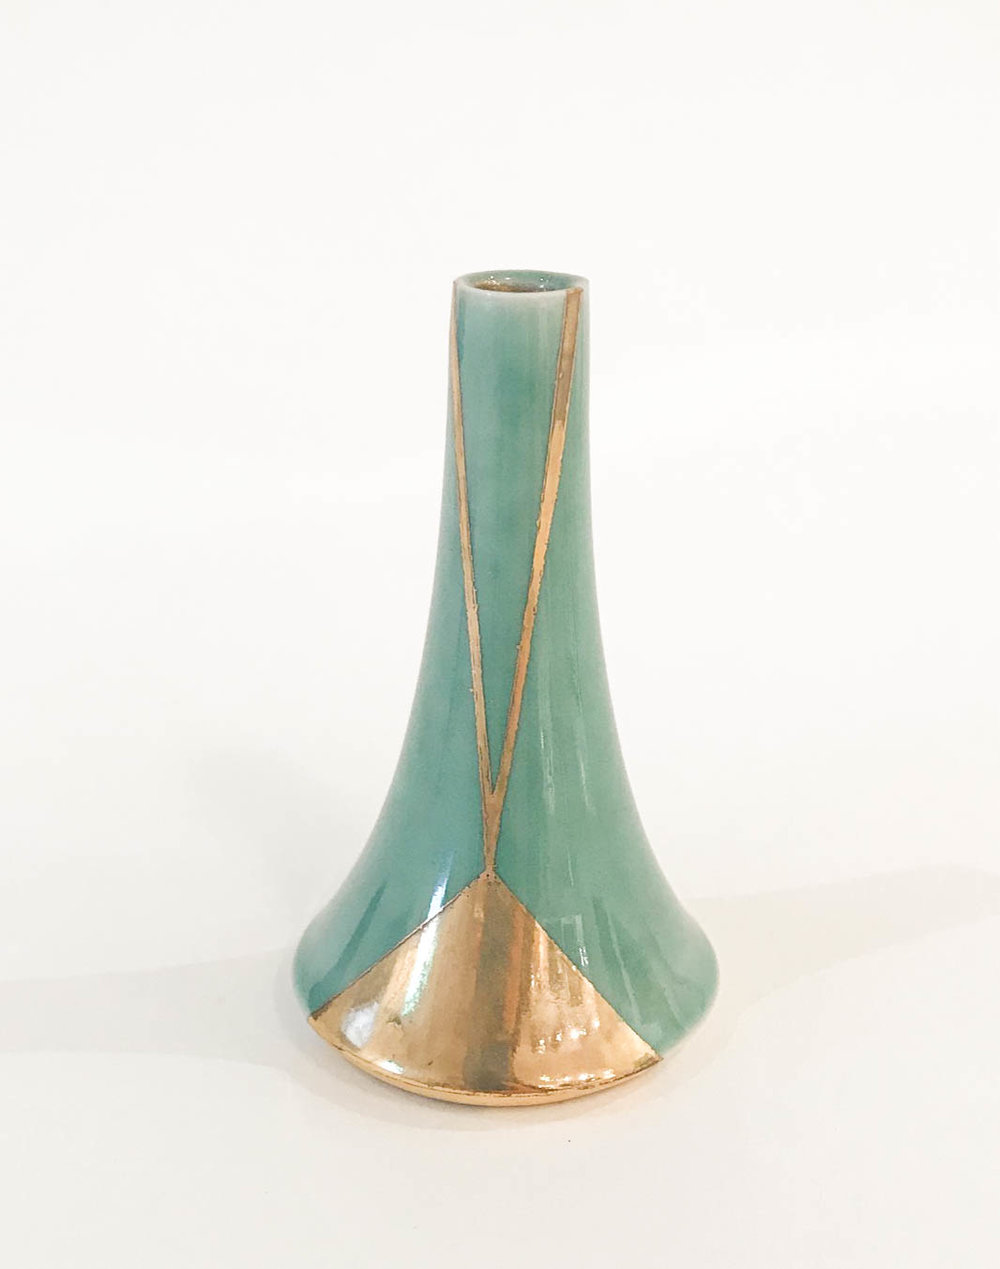 "Small Volcano Vase , wheel-thrown porcelain, celadon with gold luster geometric design, 3 3/4"" x 2 1/4"", sold"